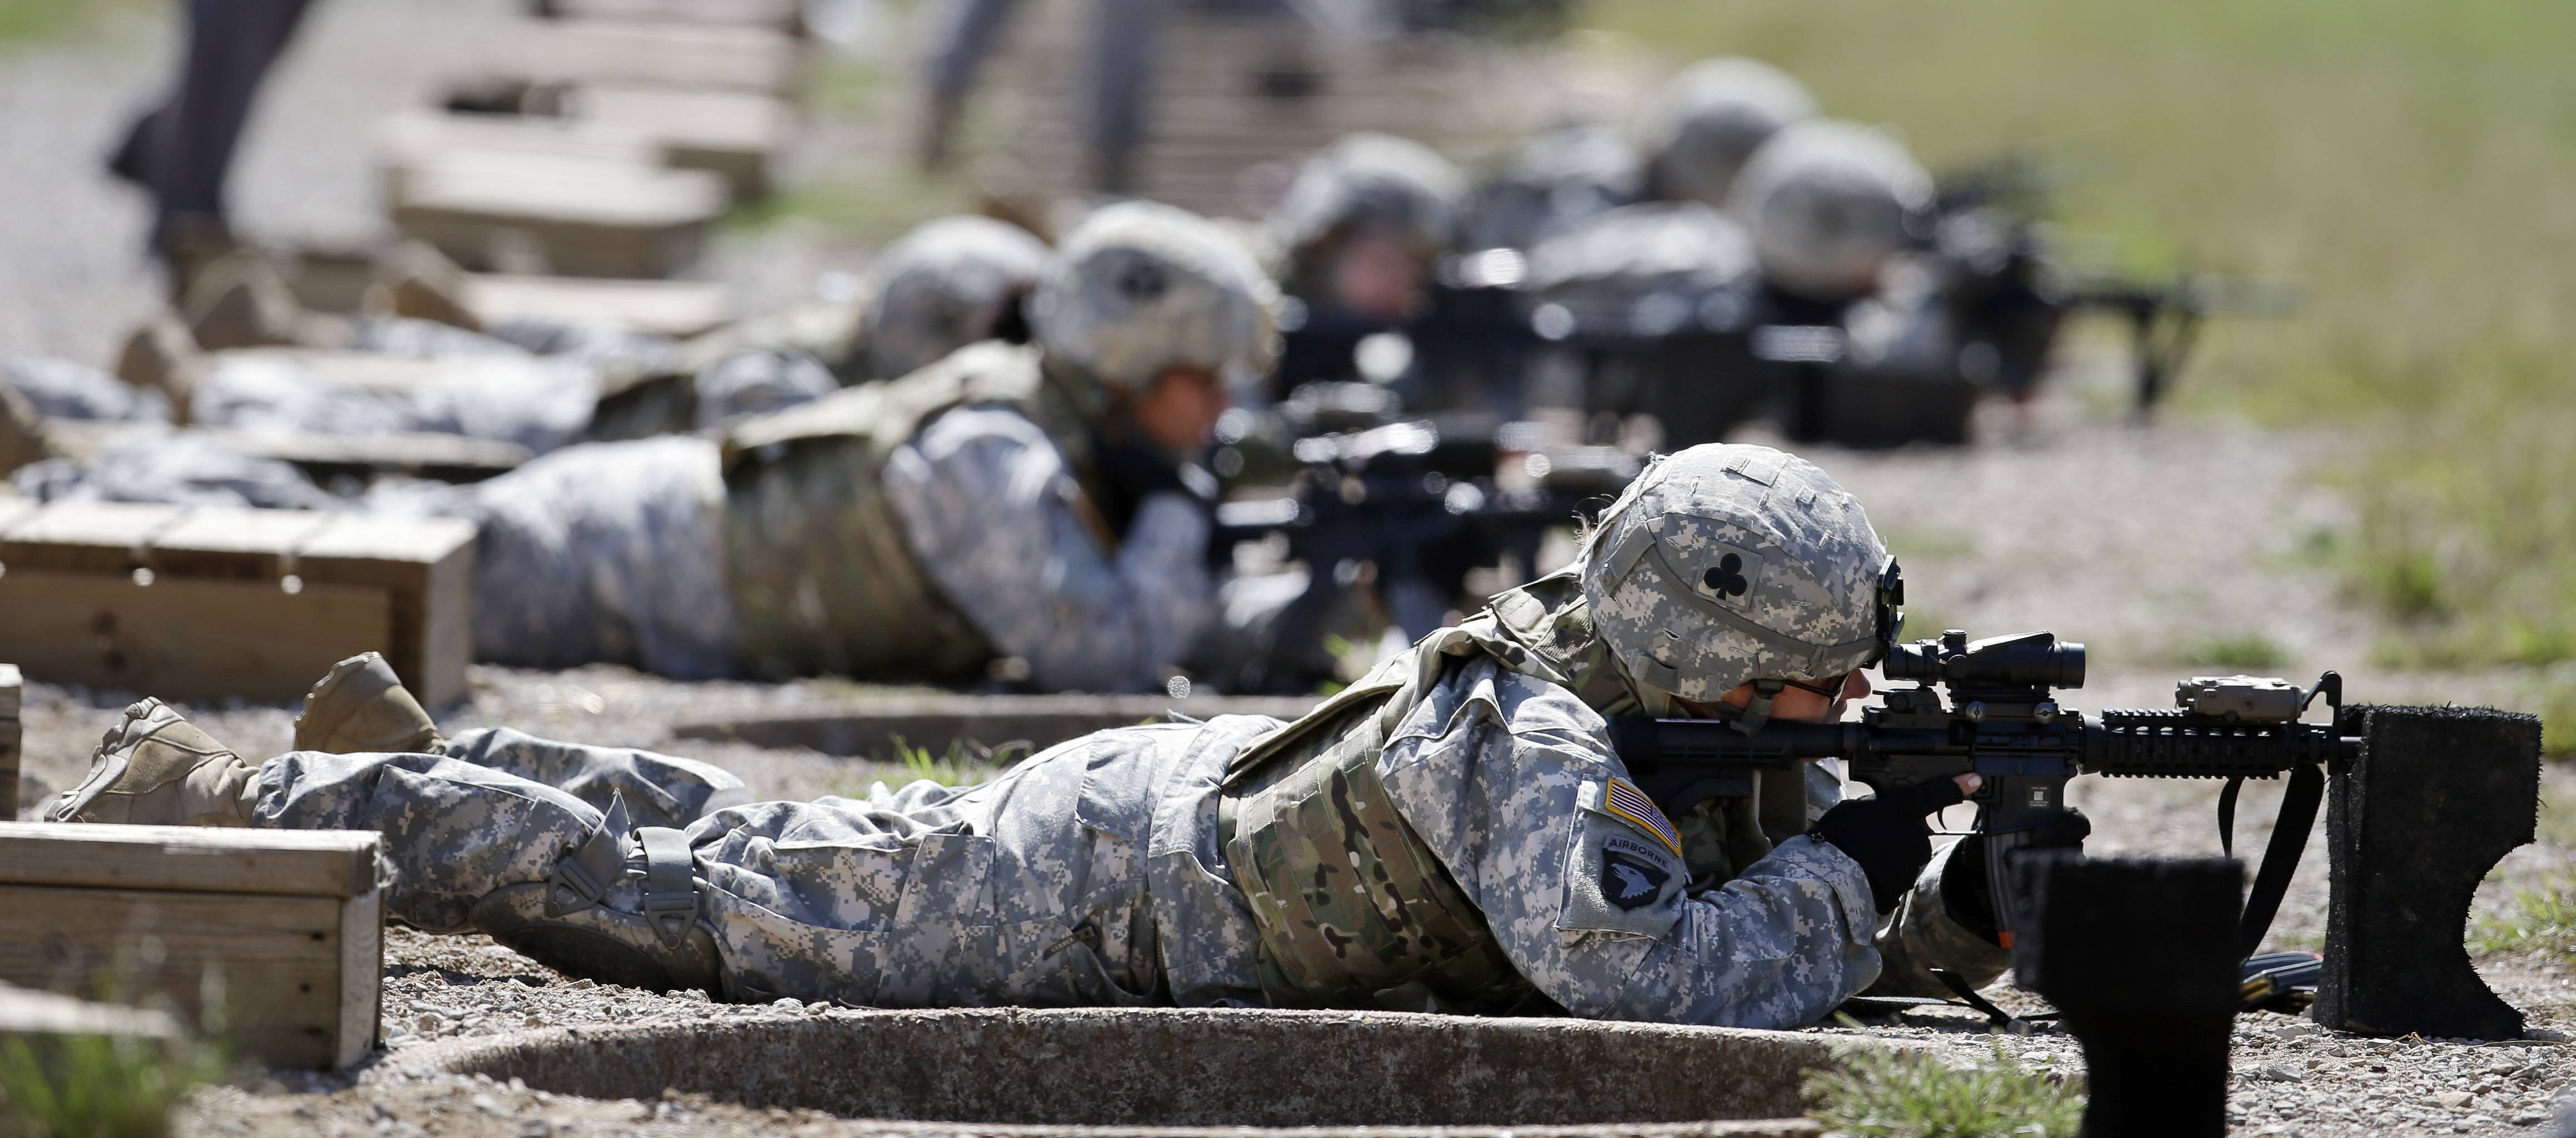 Only a small fraction of Army women say they'd like to move into one of the newly opening combat jobs, but those few who do, say they want a job that takes them right into the heart of battle, according to preliminary results from a survey of the service's nearly 170,000 women.